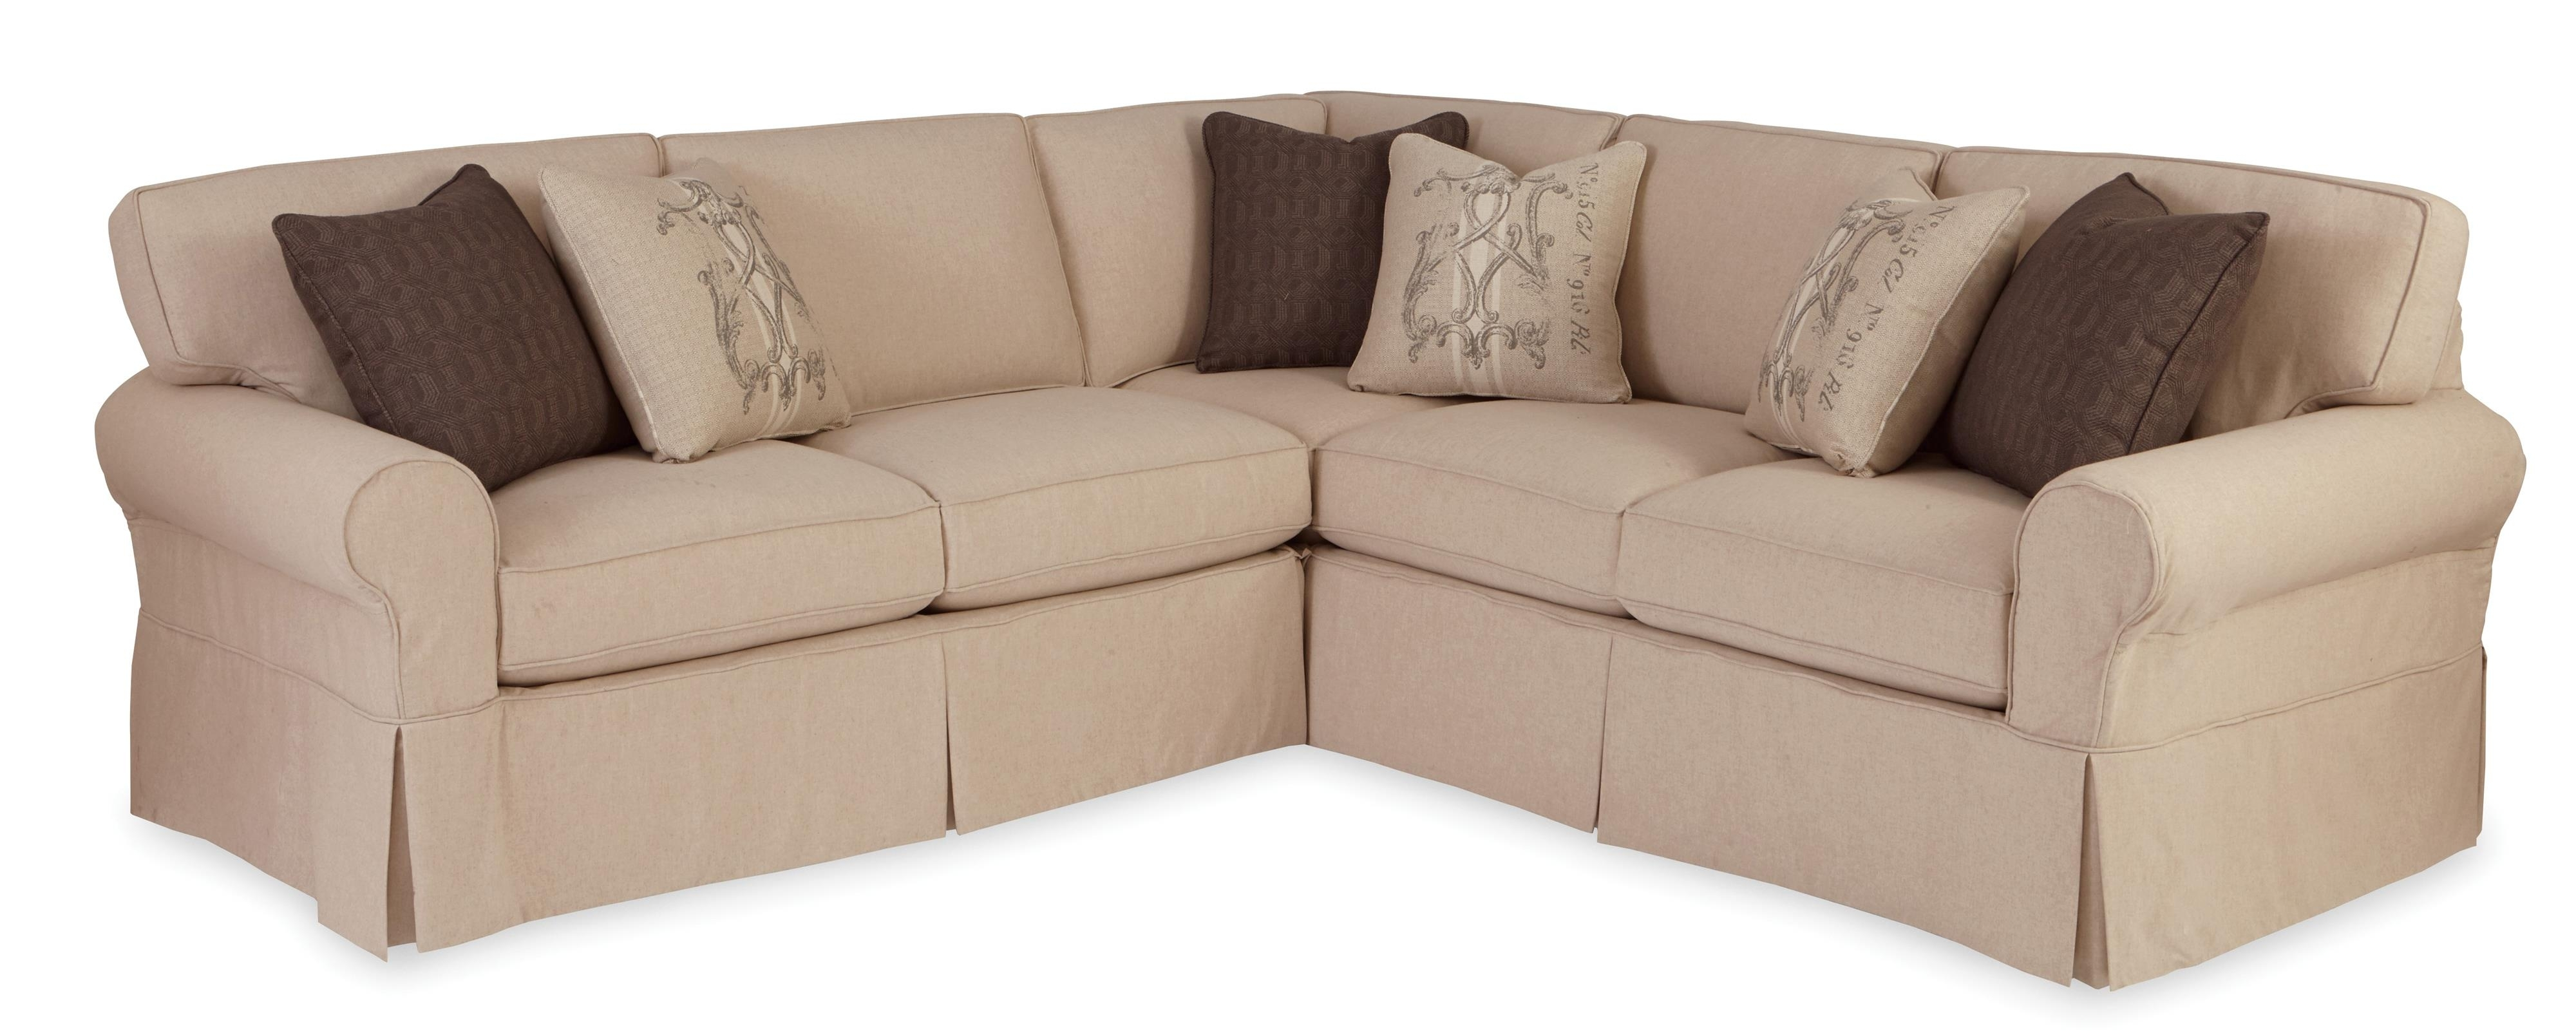 Craftmaster 9228 Two Piece Slipcovered Sectional Sofa With Raf Intended For Josephine 2 Piece Sectionals With Laf Sofa (Image 11 of 25)